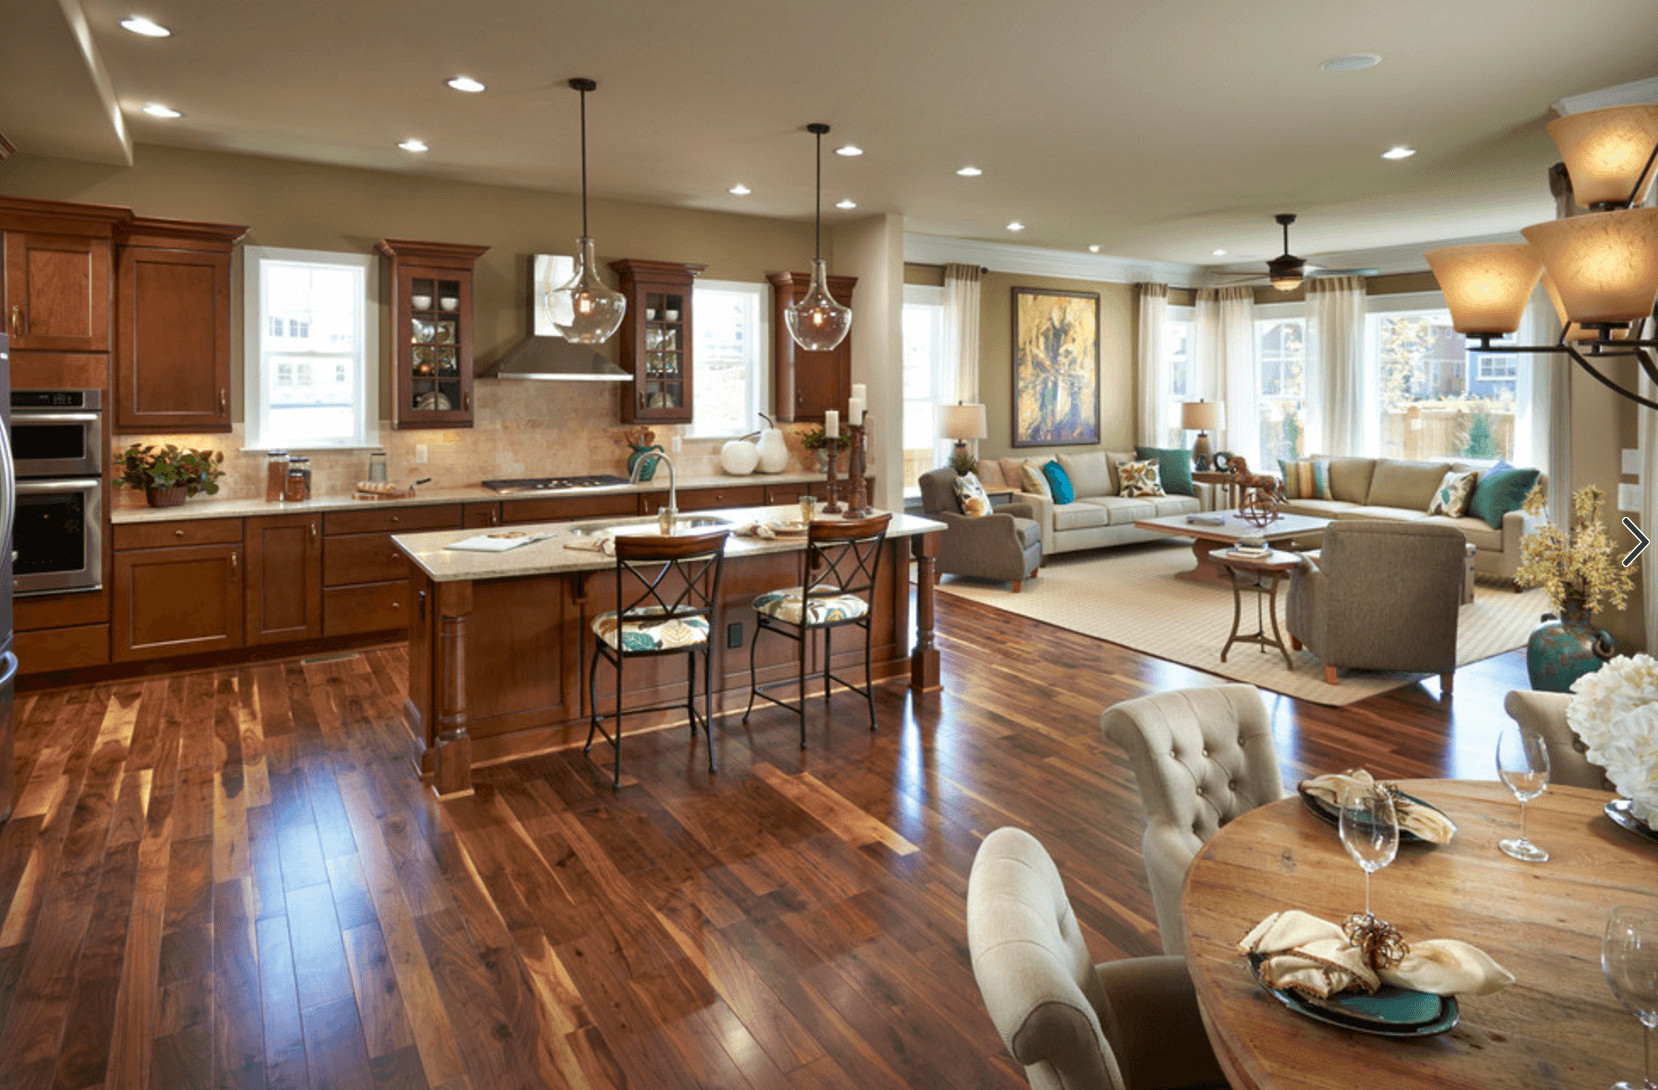 6 engineered hardwood flooring of gleaming wood flooring ties the space together 6 great reasons to regarding gleaming wood flooring ties the space together 6 great reasons to love an open floor plan